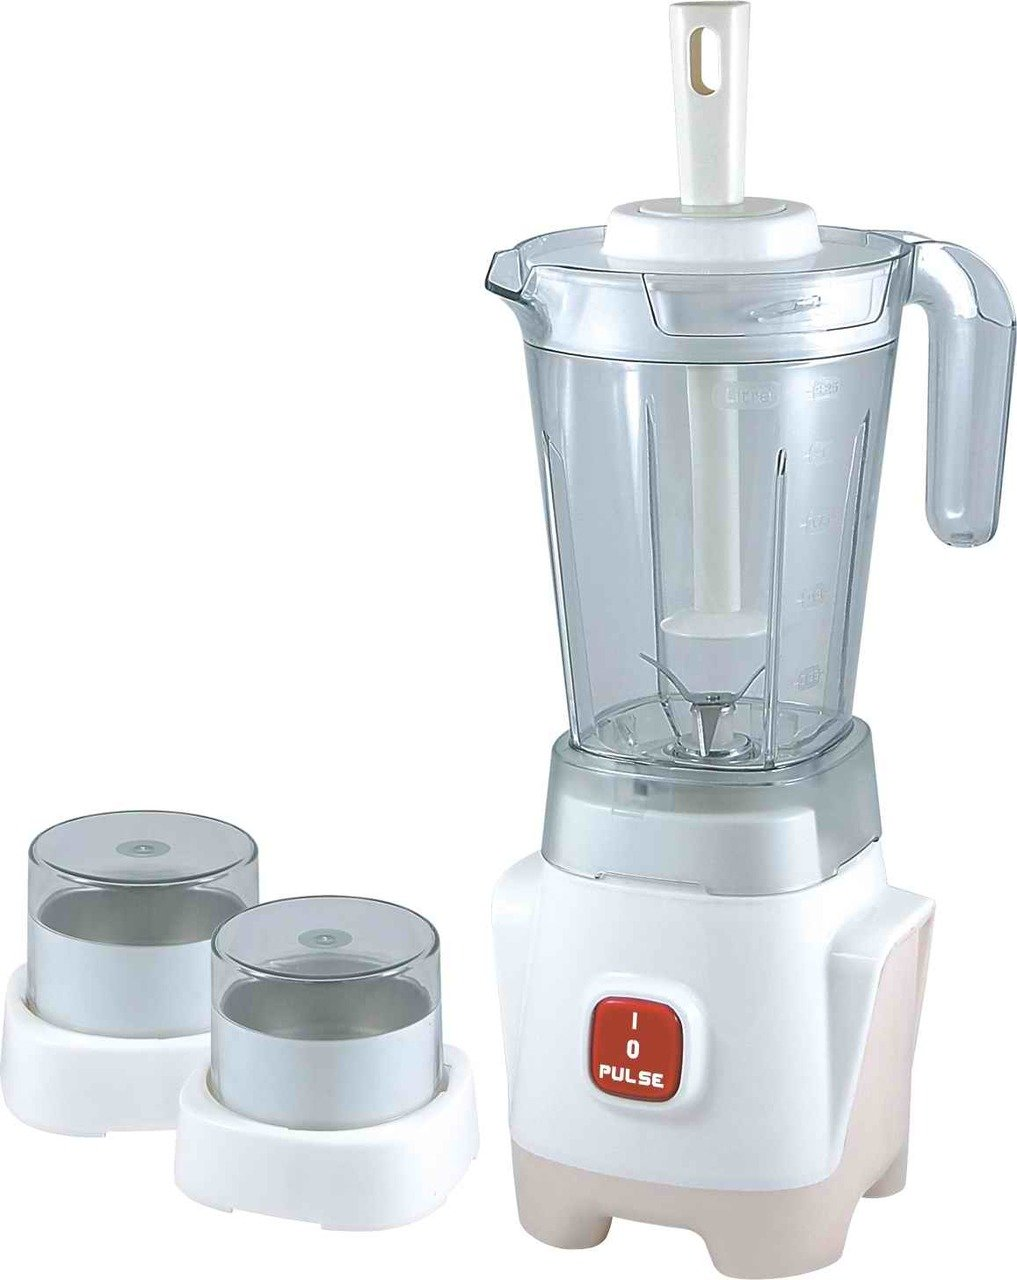 Uncategorized Moulinex Kitchen Appliances moulinex lm241 table top blender liquidiser amazon co uk lm242 special edition with mill and grater